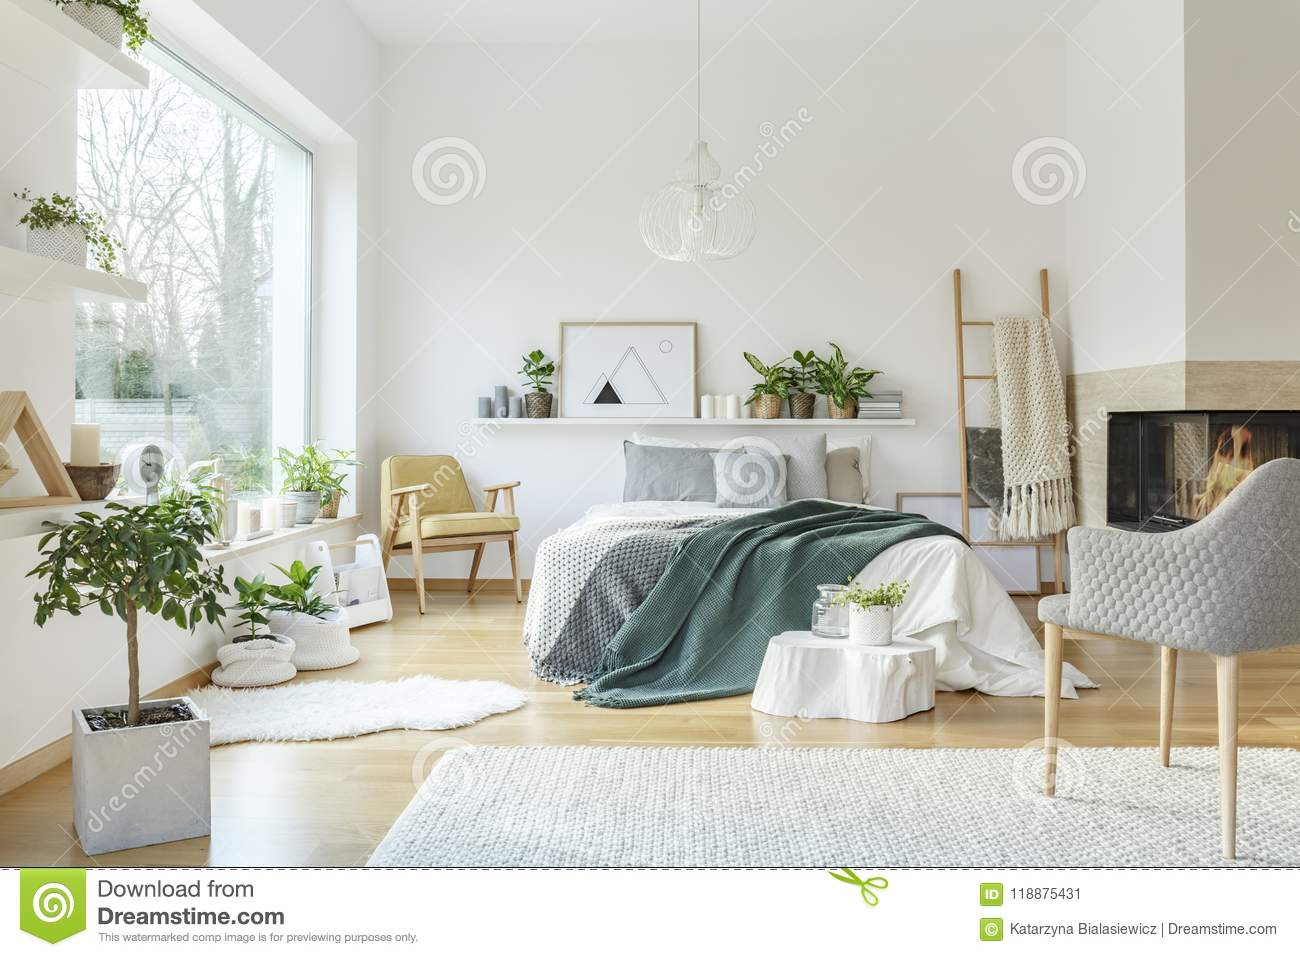 Green And Yellow Bedroom Interior Stock Image - Image of ...